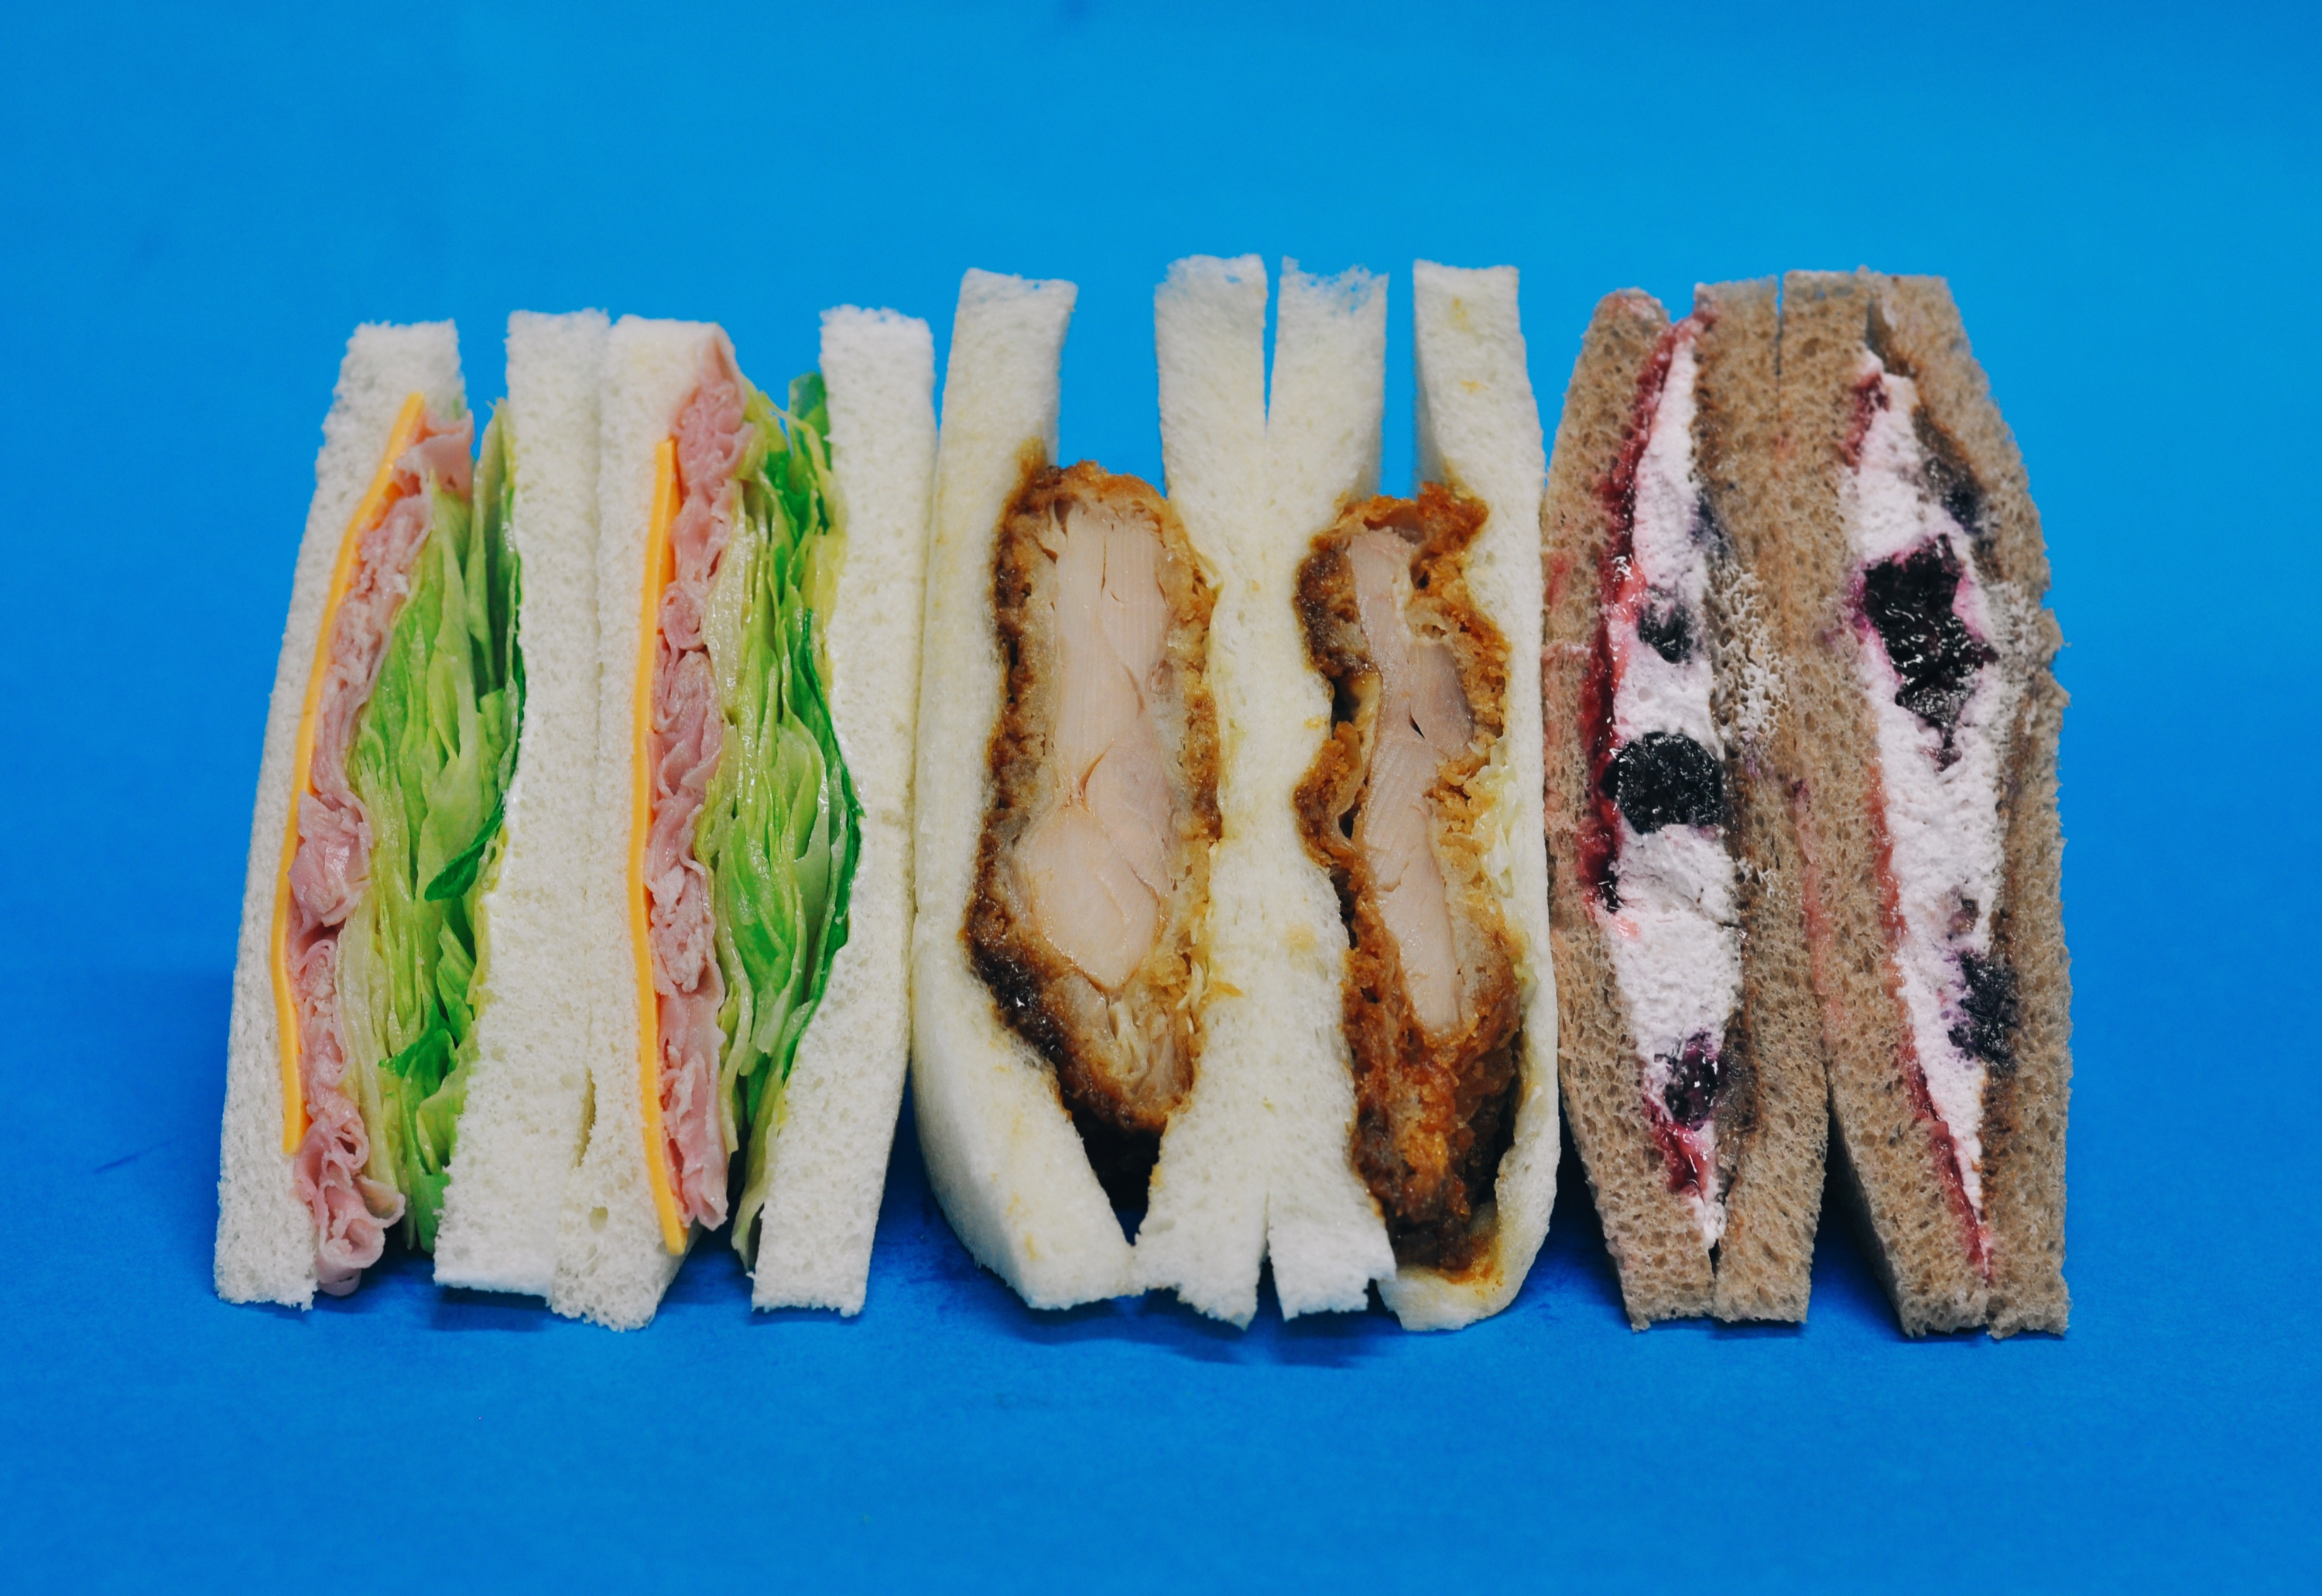 The konbini connoisseur's guide to sandwiches